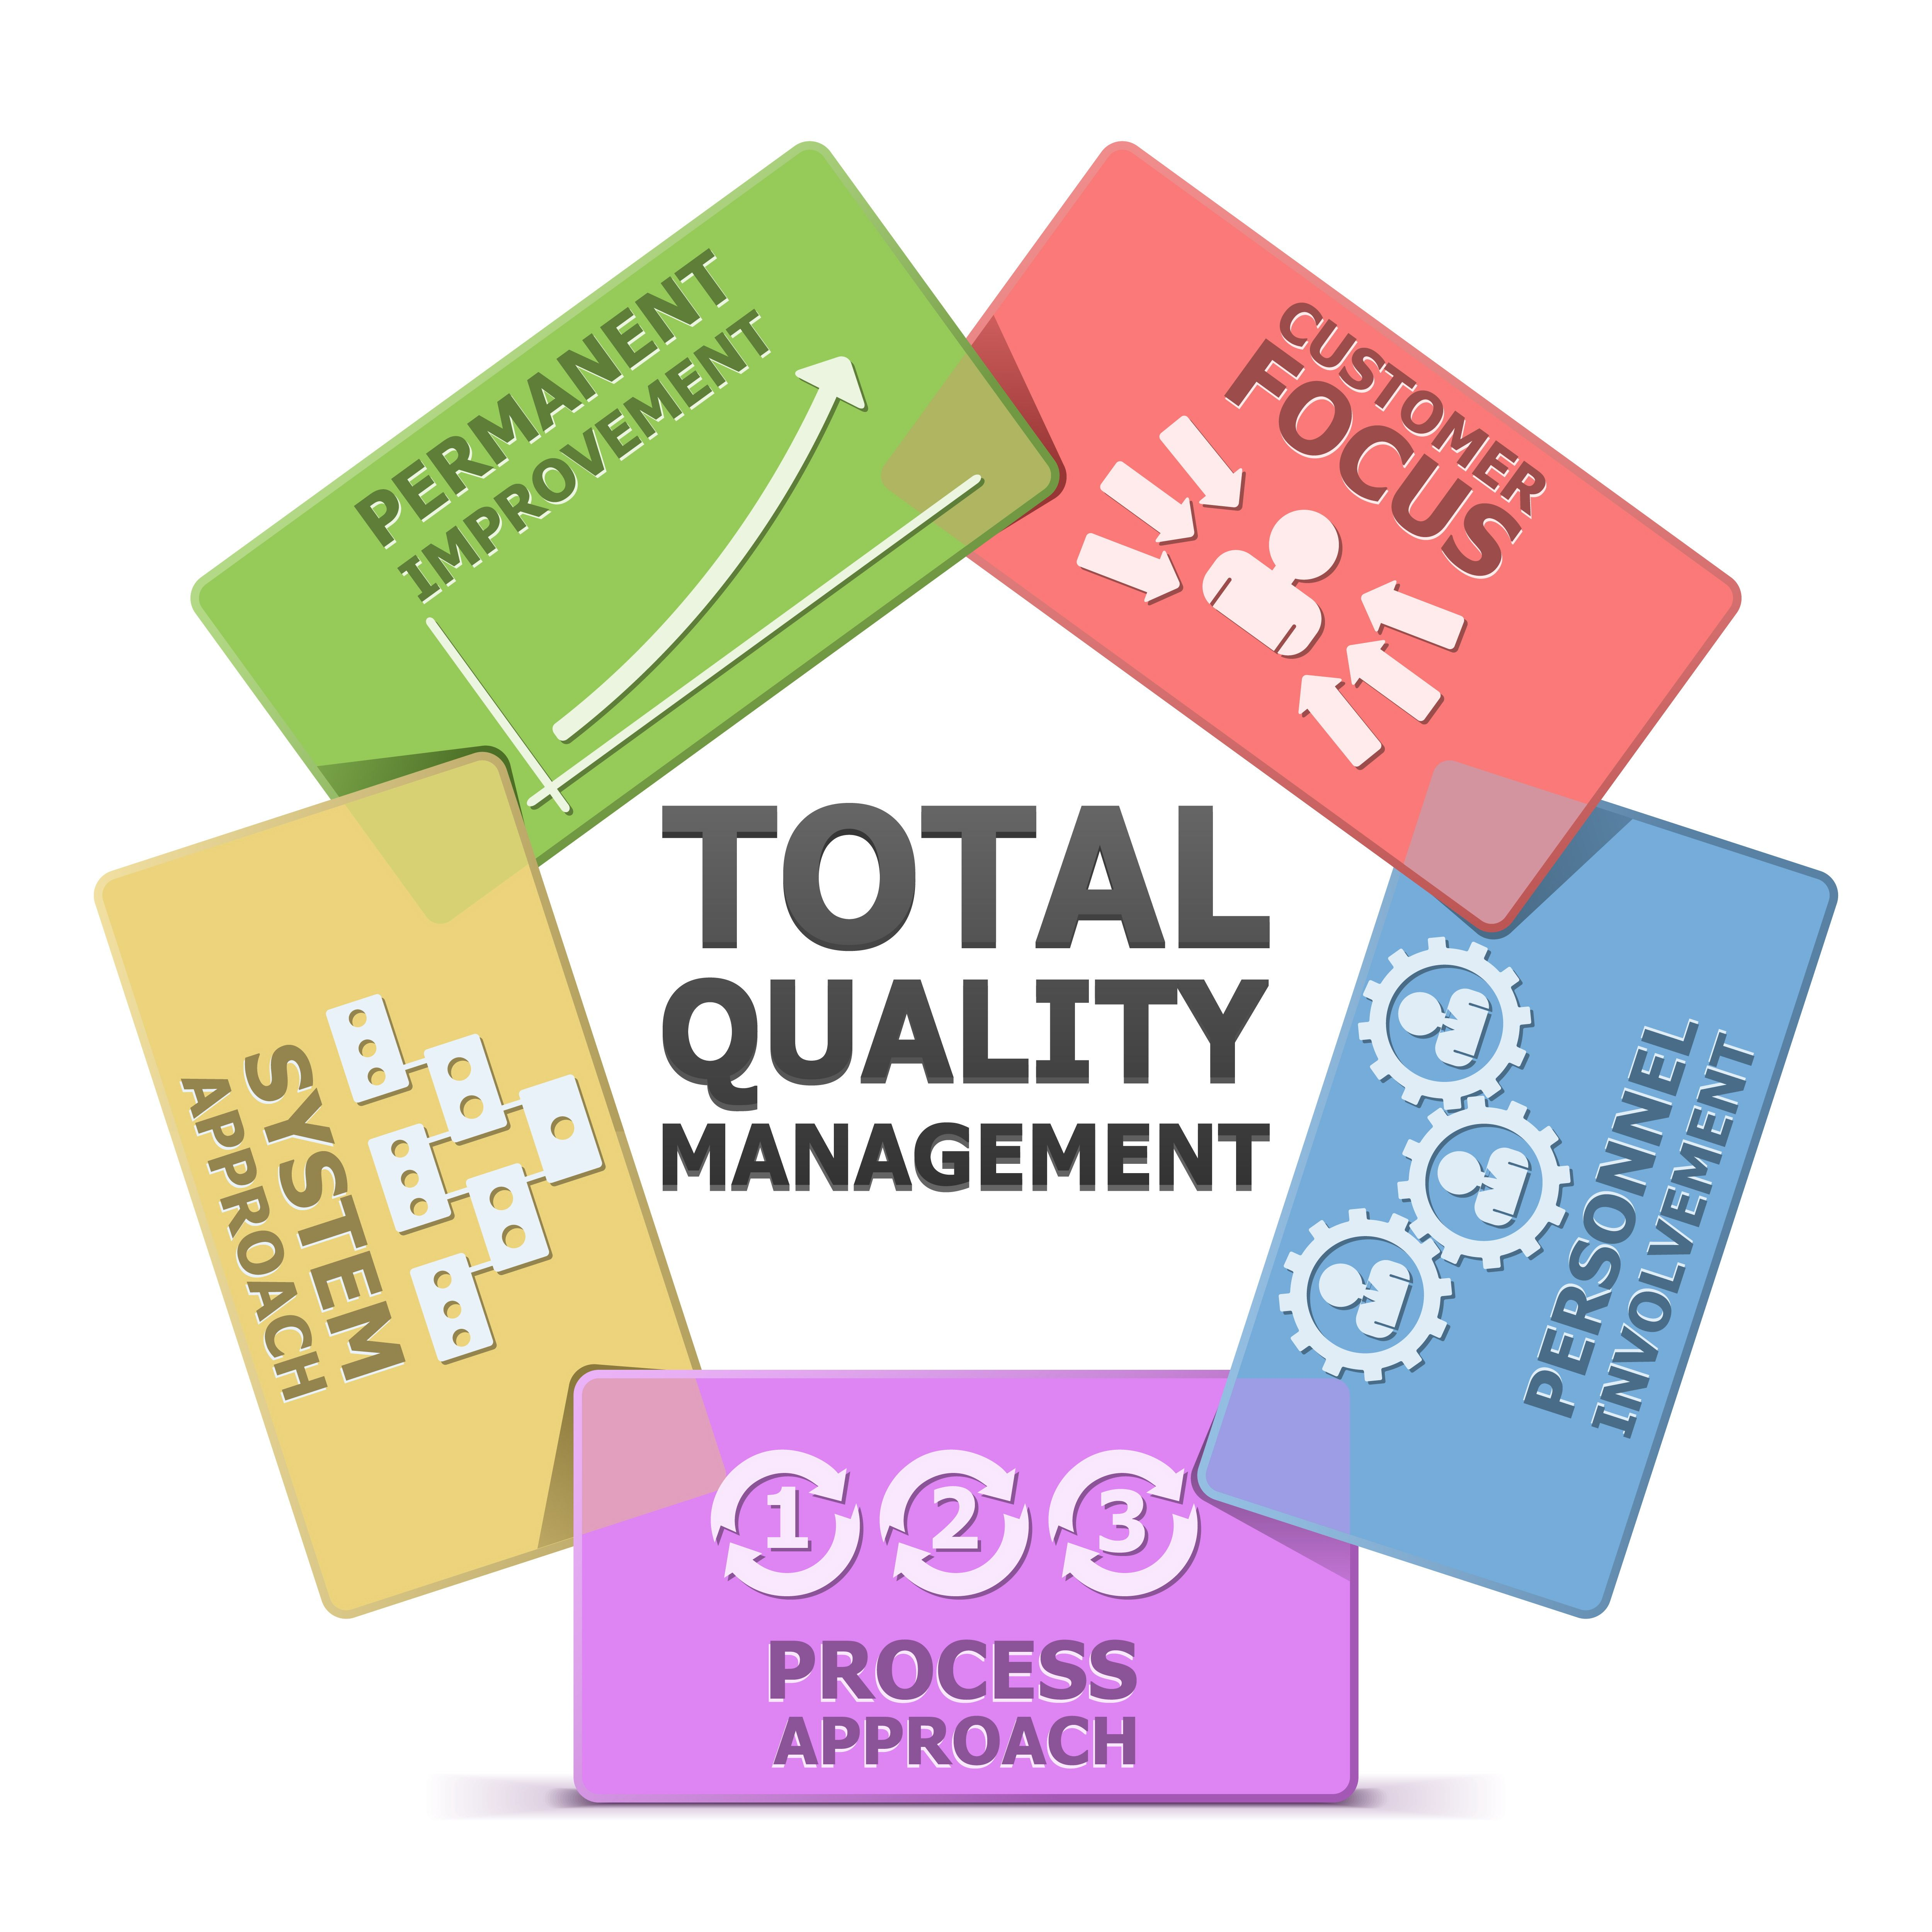 quality and total quality management management essay Total quality management essay writing service, custom total quality management papers, term papers, free total quality management samples, research papers, help.